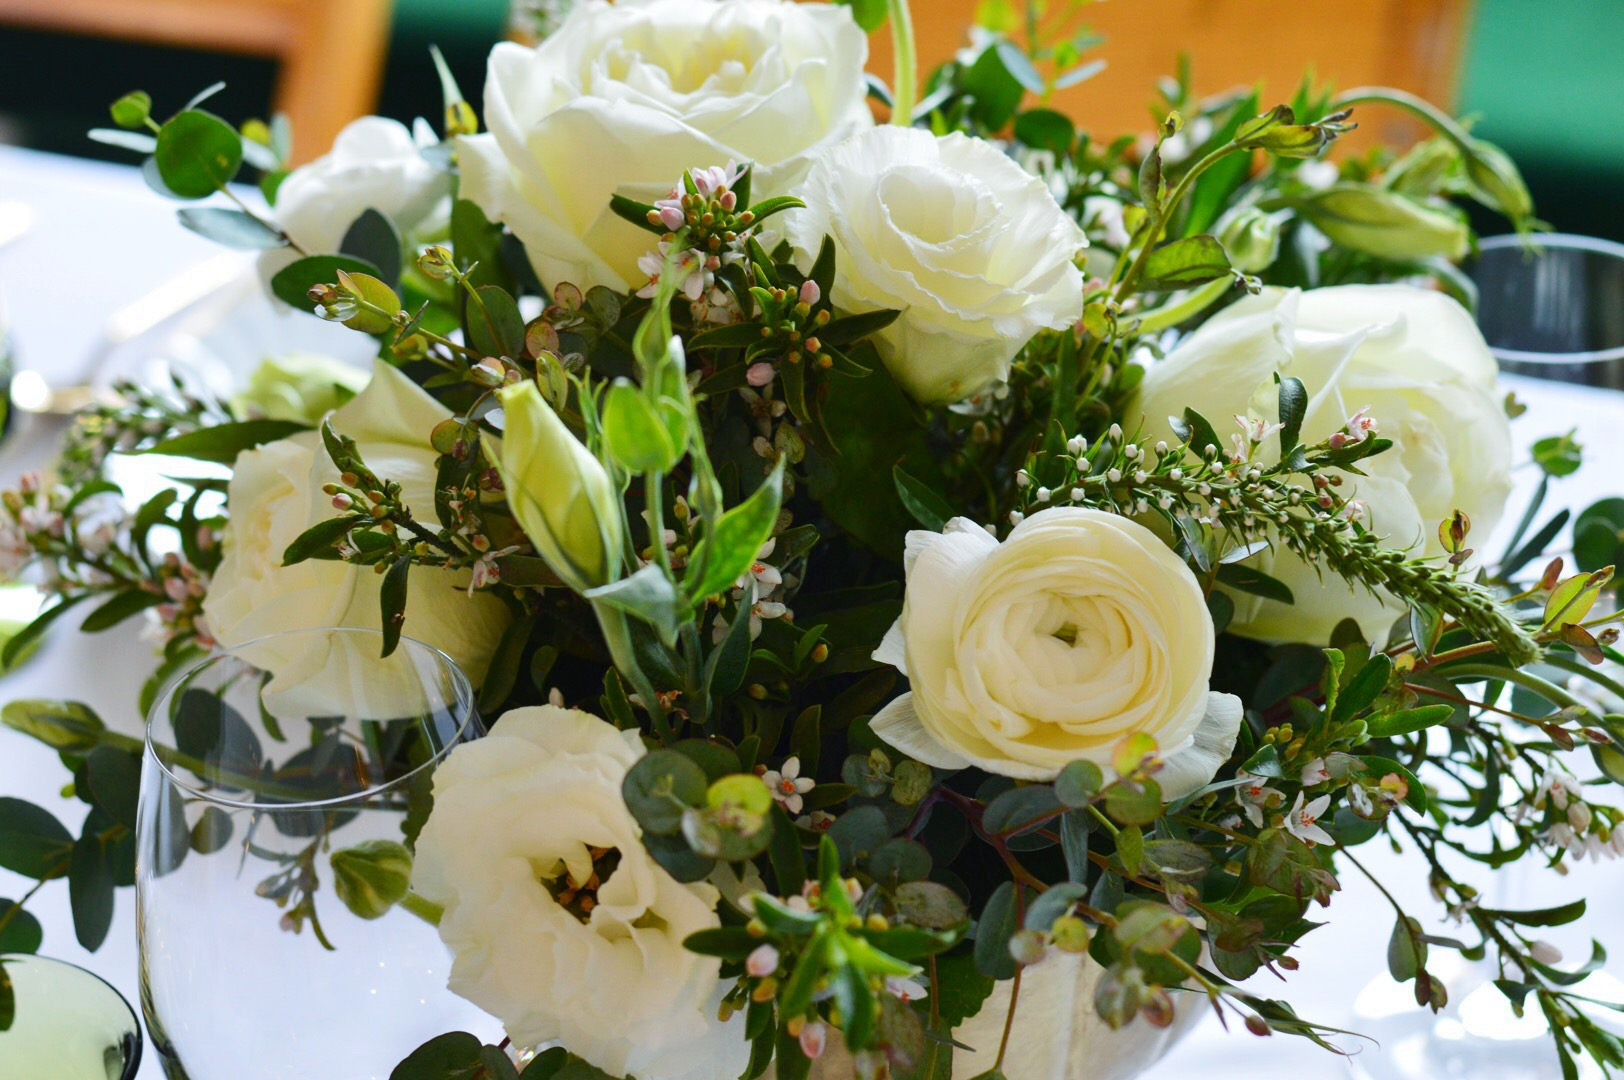 Vintage Inspired Bridal Shower  Green and White Centerpiece  Bridal Shower Flowers  Planning by Wrap It Up Parties